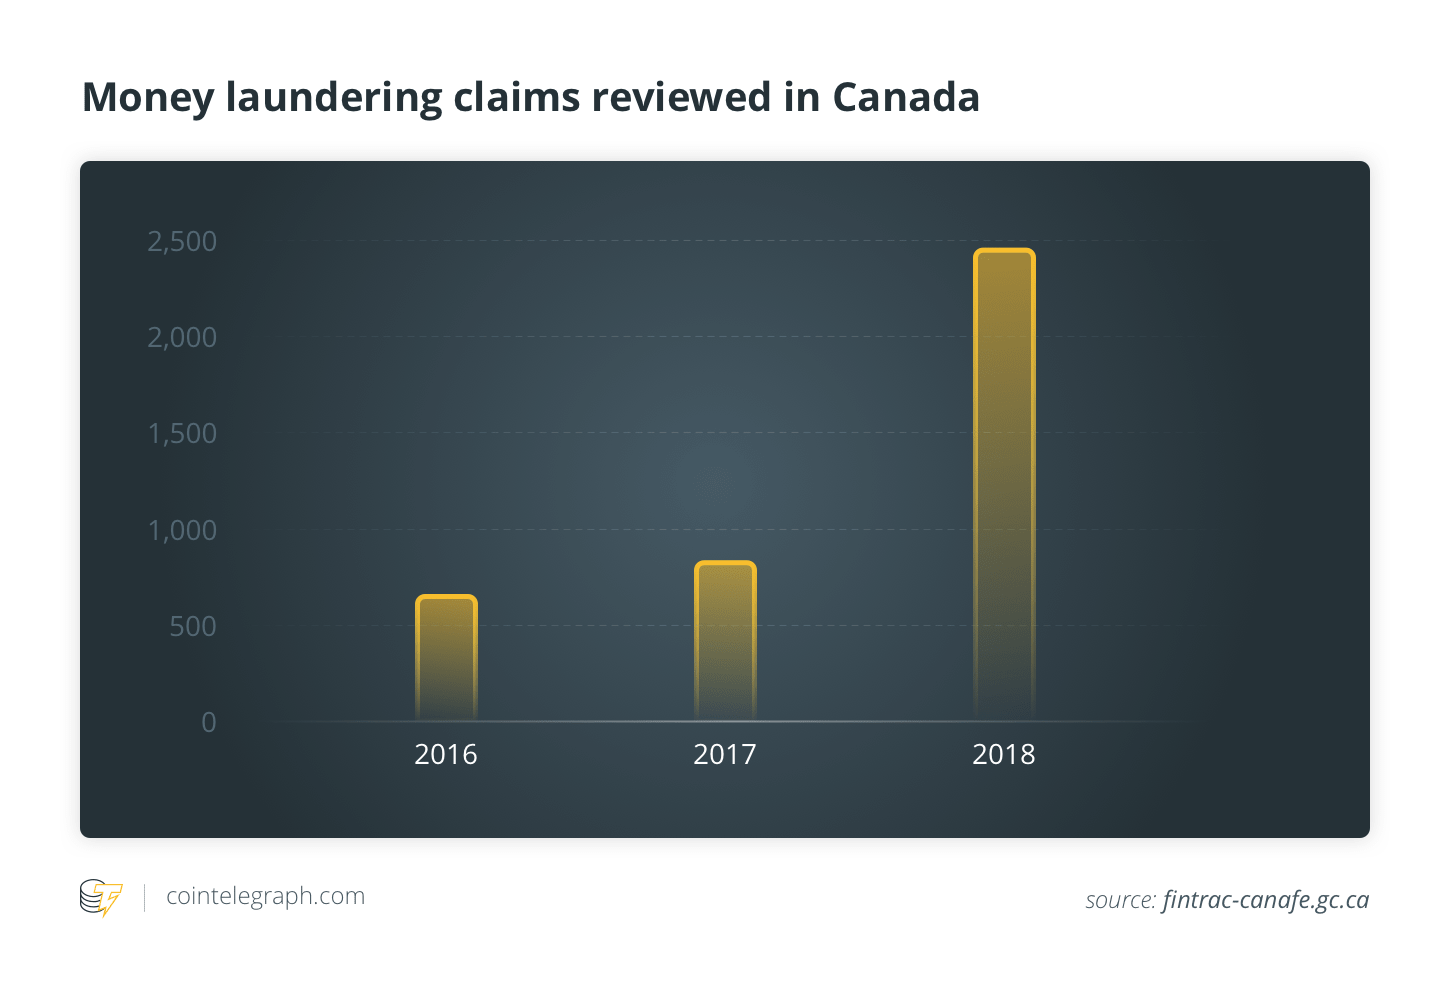 Money laundering claims reviewed in Canada